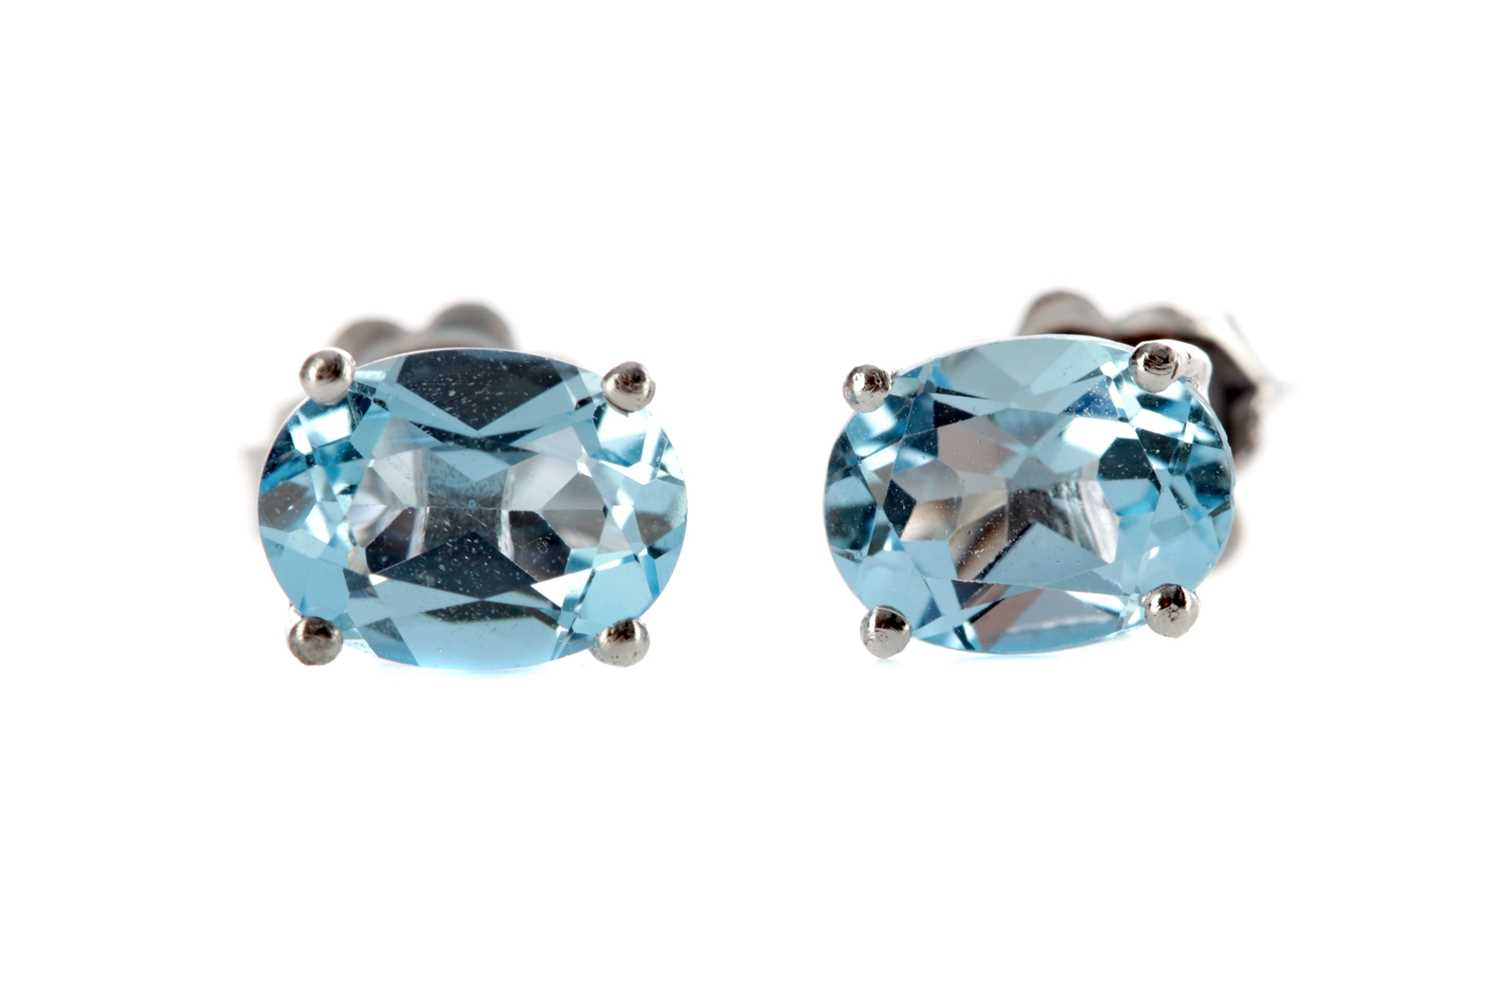 Lot 1390 - A PAIR OF BLUE TOPAZ STUD EARRINGS